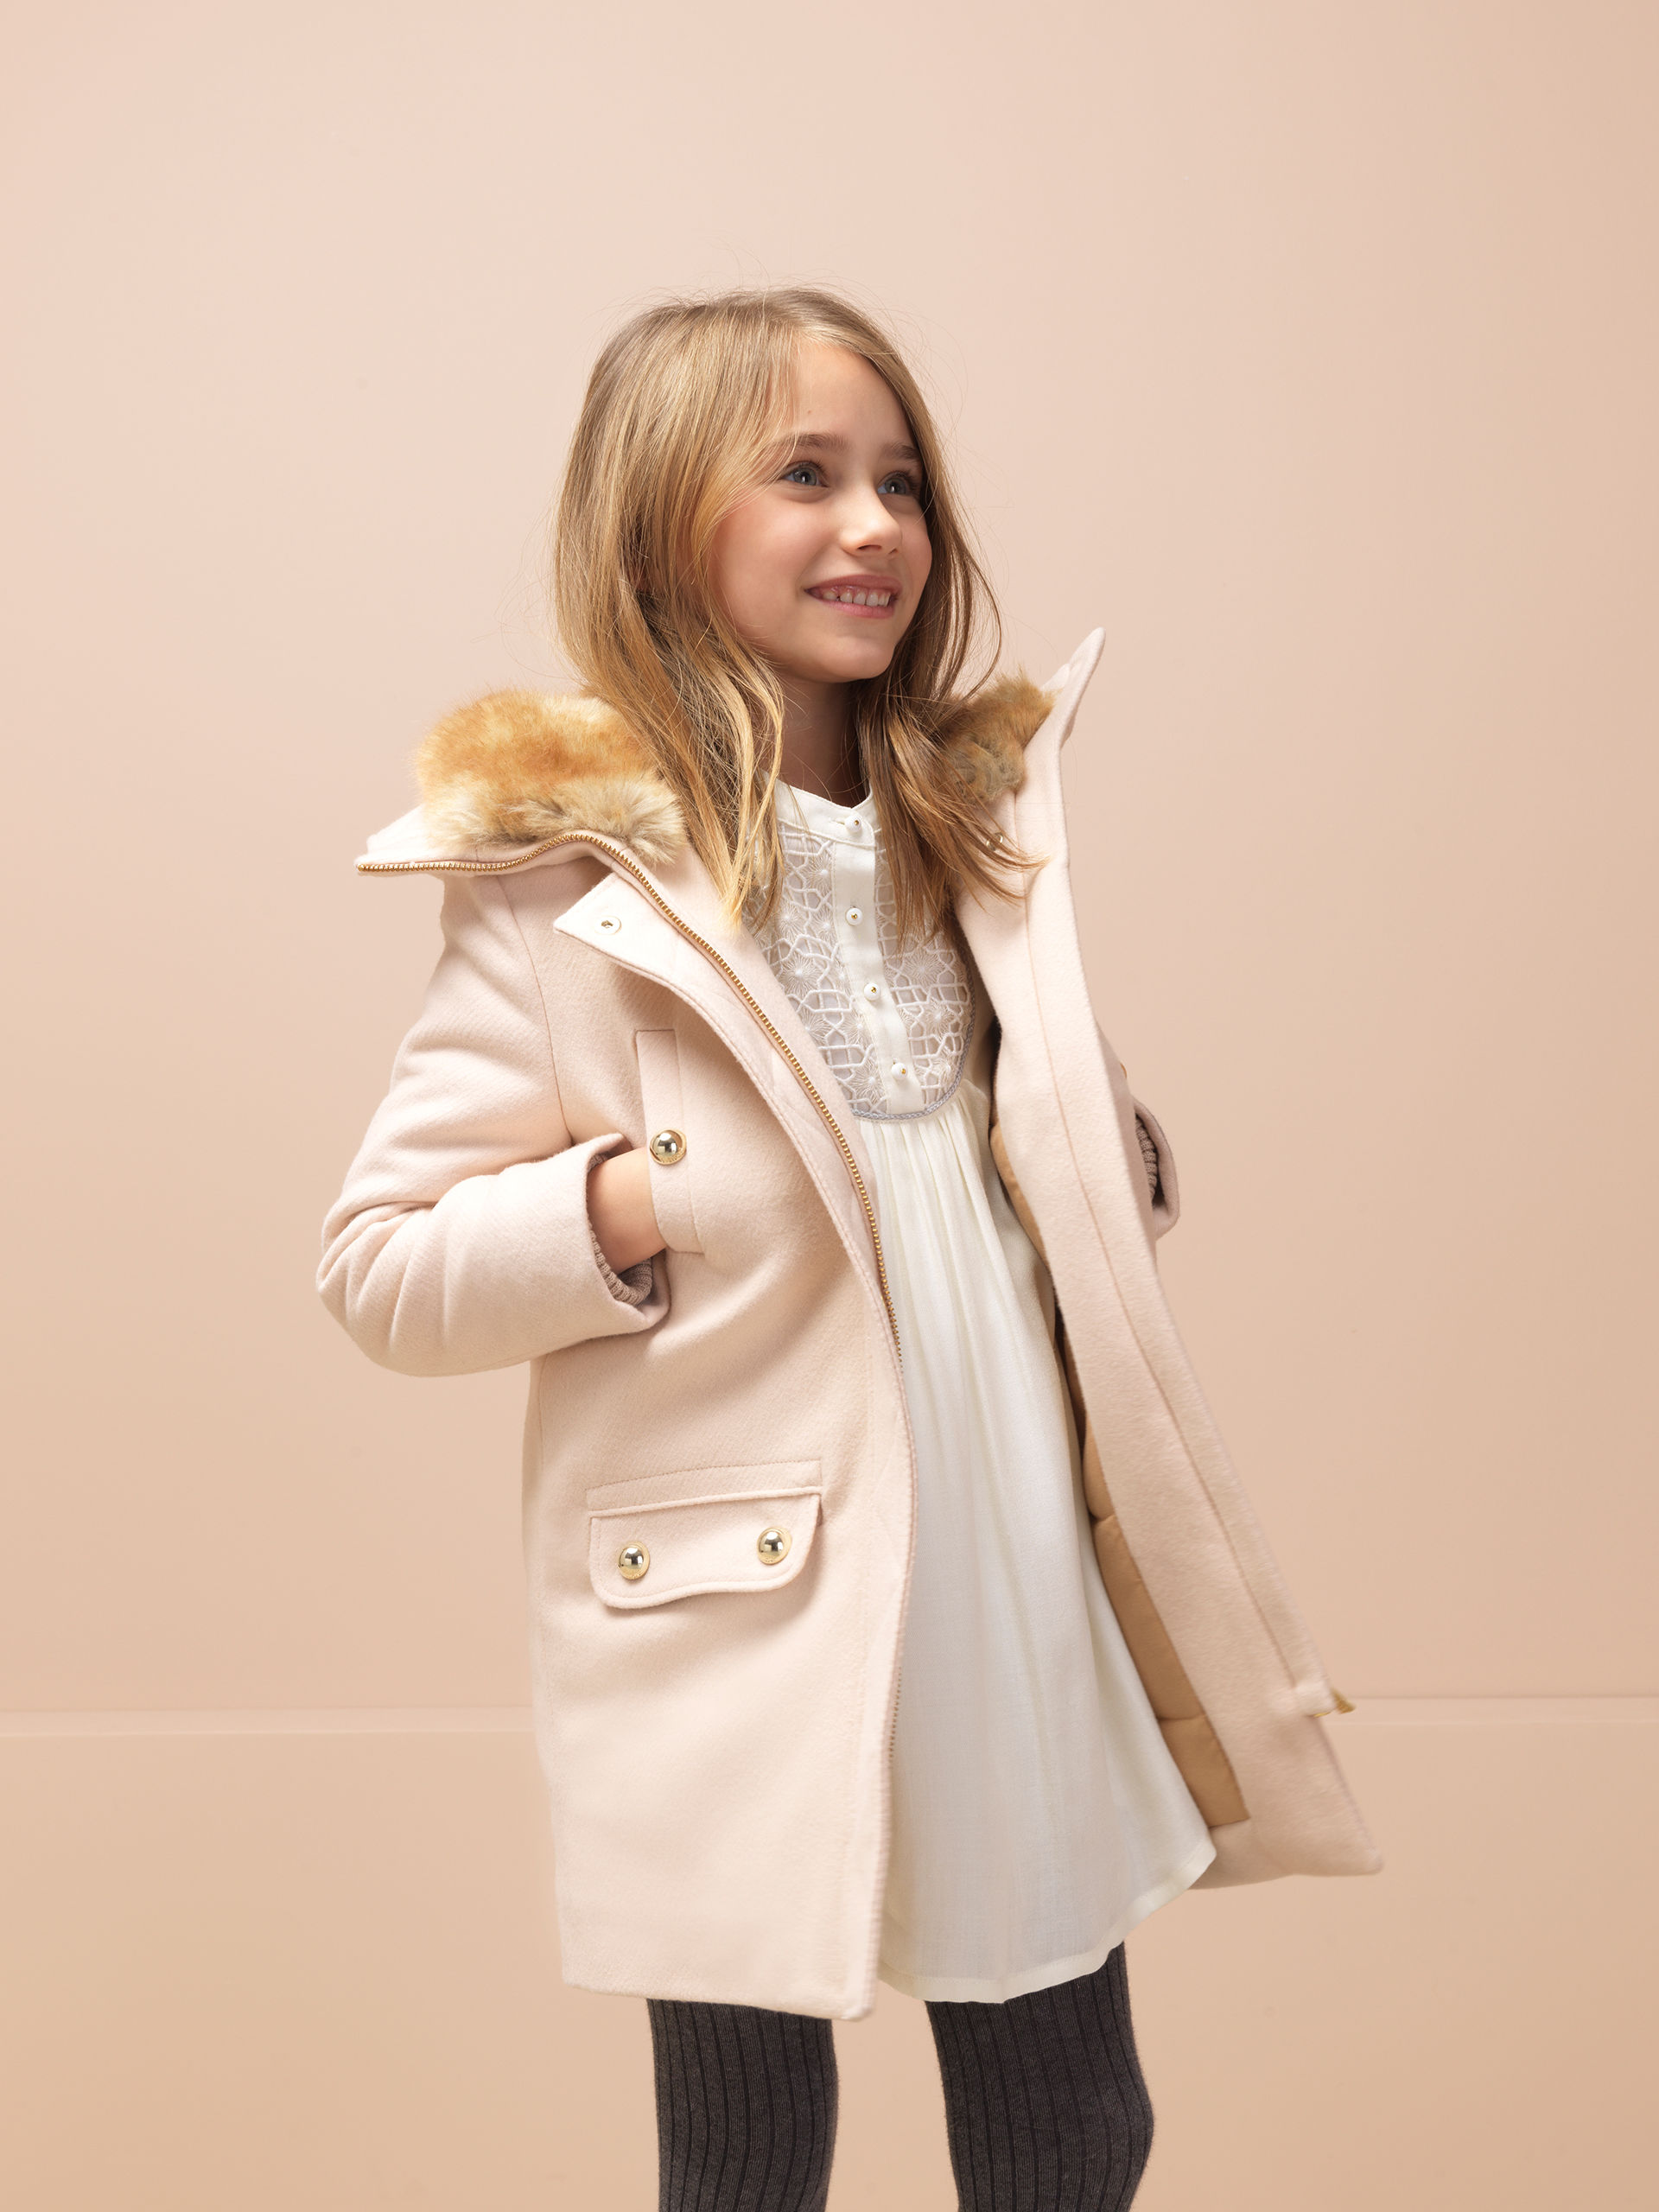 8 Best High Fashion Kids Brands To Expand AW 2017/ 2018 ...